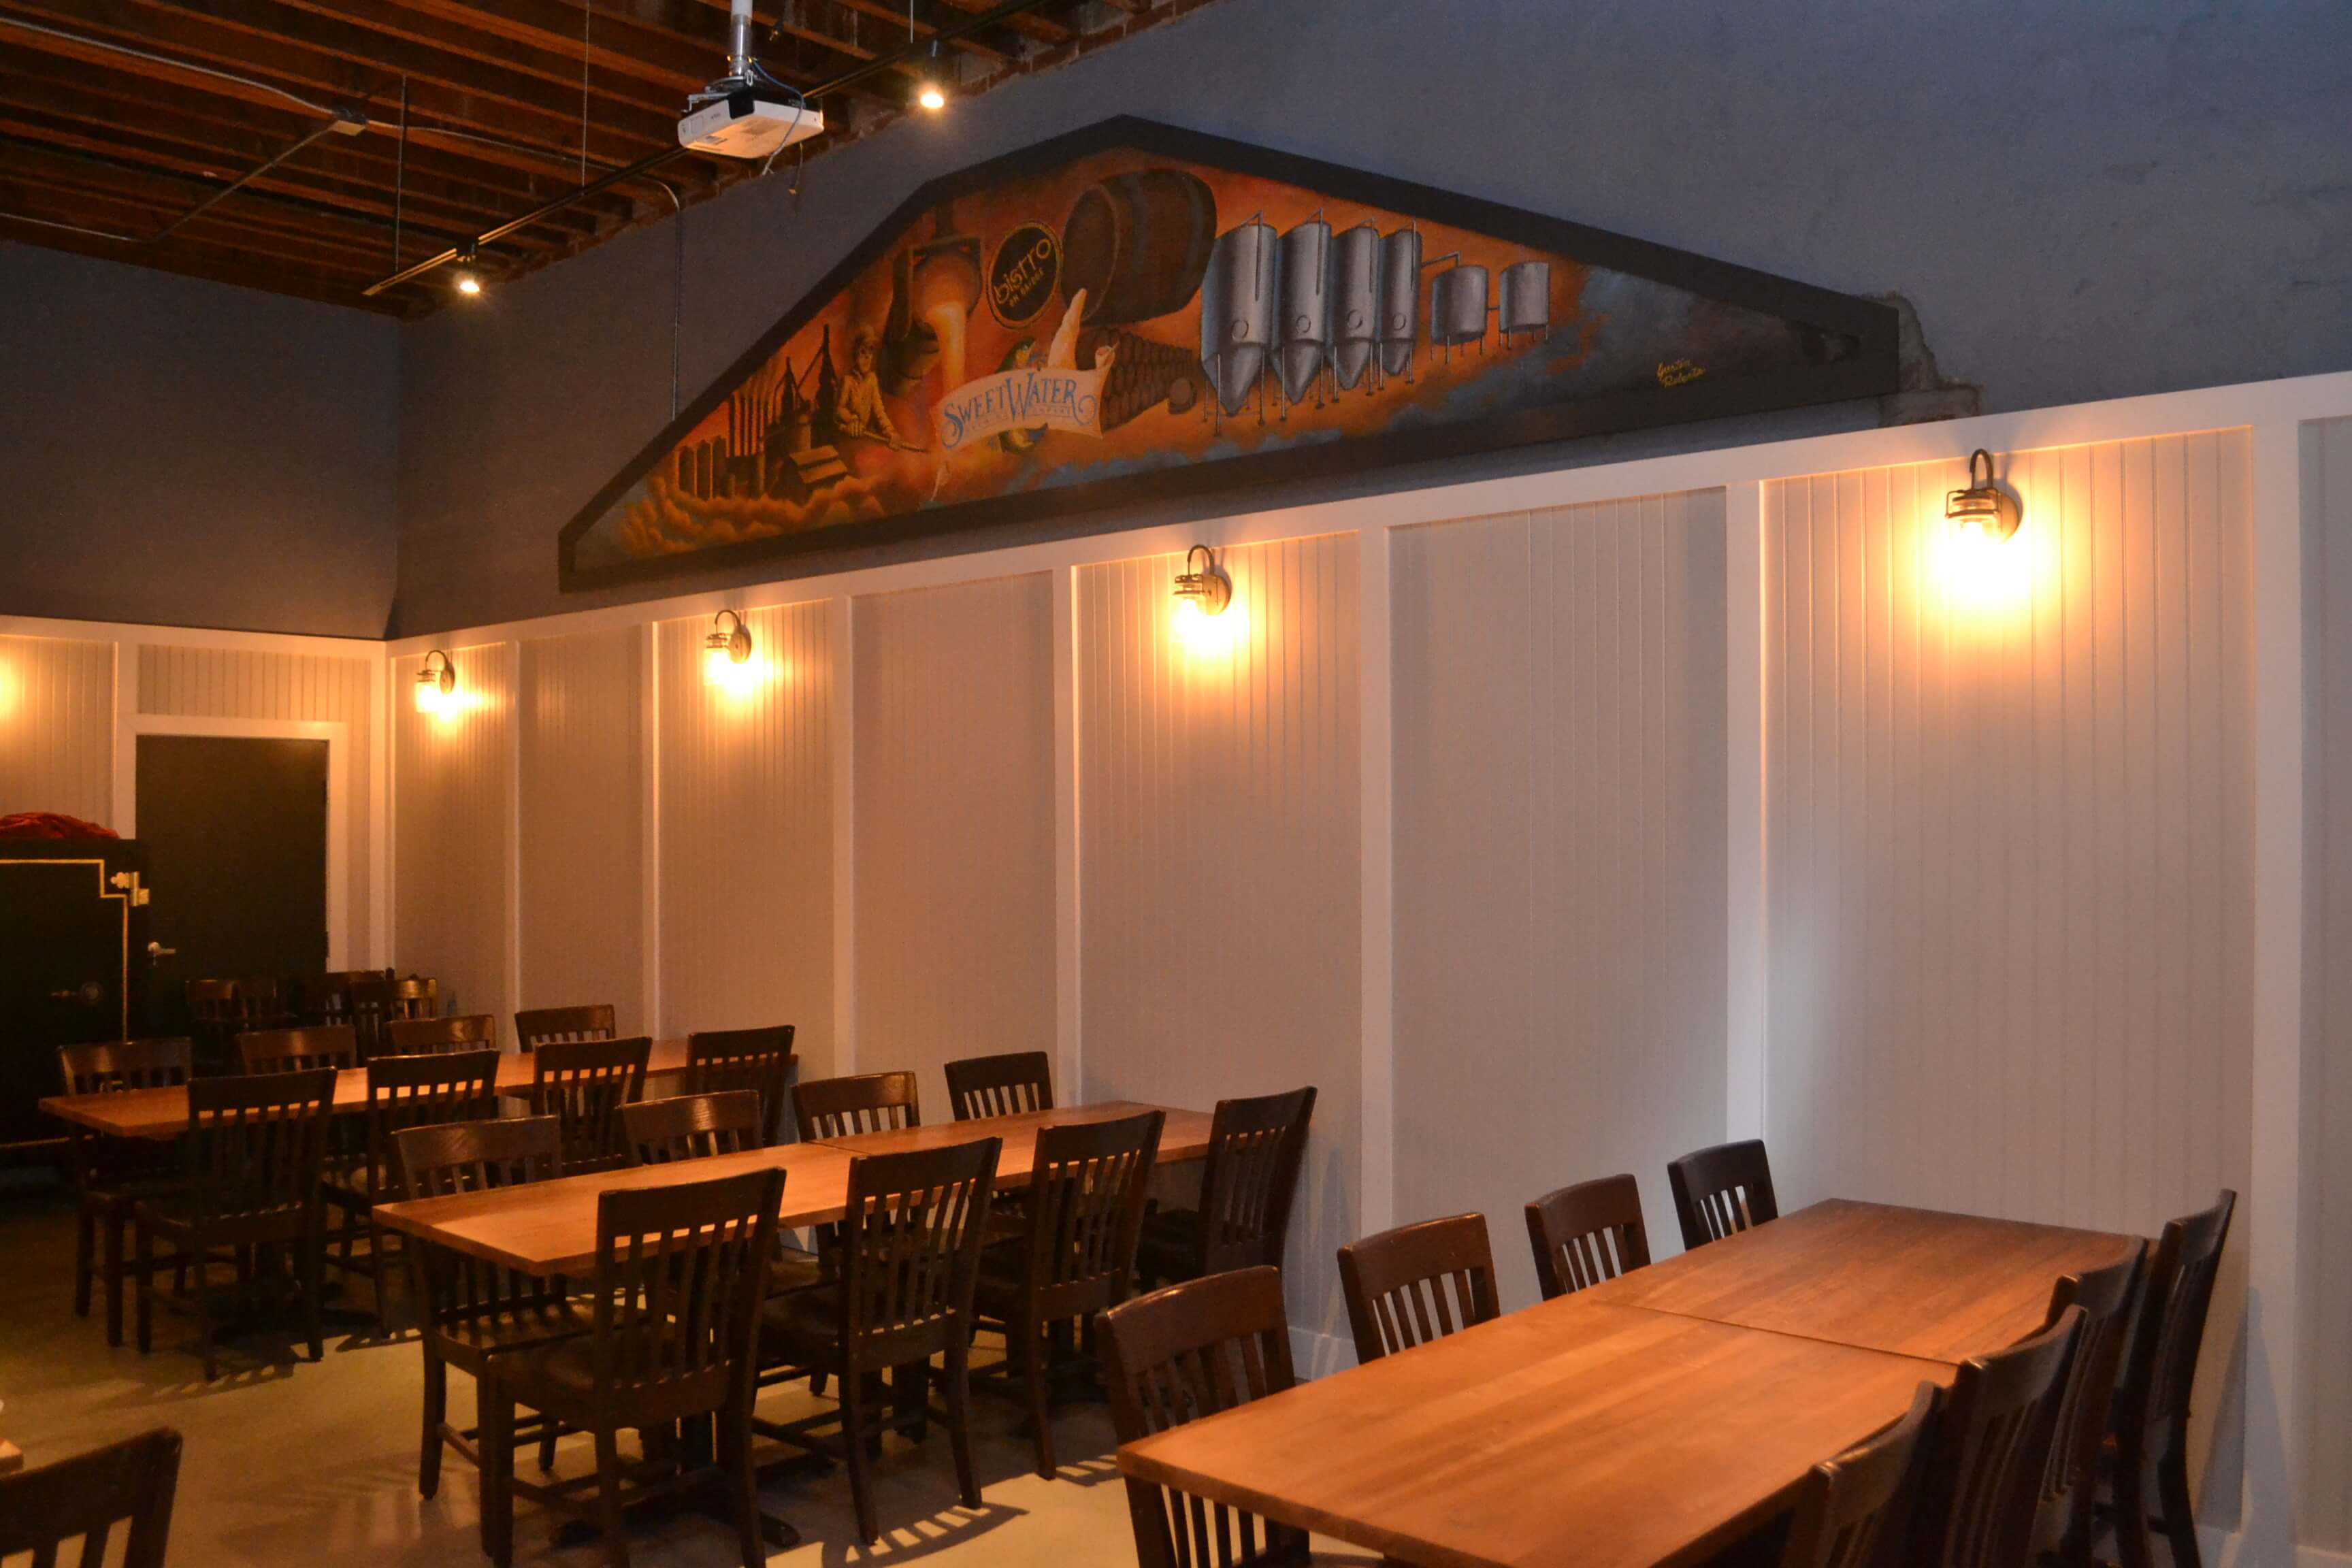 SweetWater Private Party Room